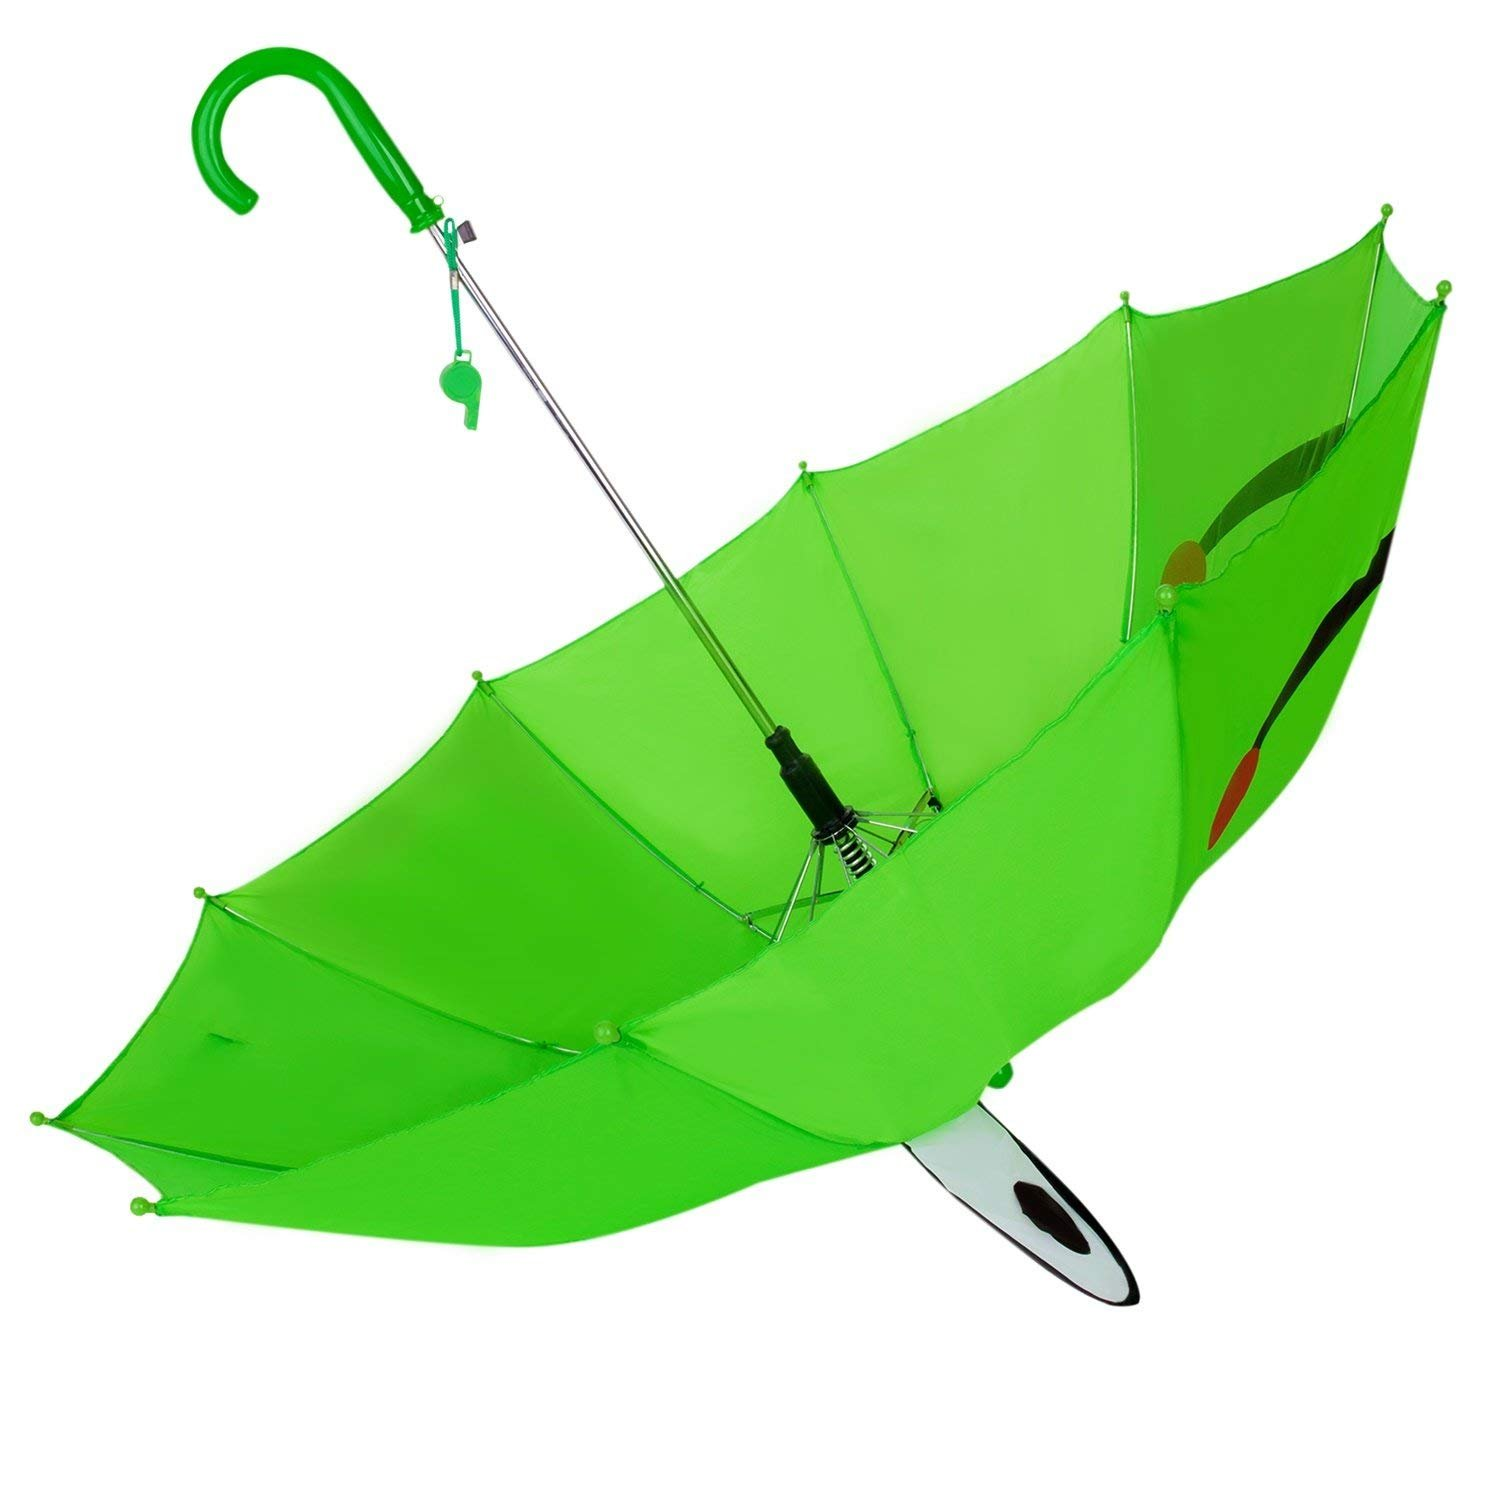 Maggie Cute Childish Funny Automatic animal Kids Umbrella/Rain gear/Rainproof/Rain Cover with UV Protection and Novelty Whistle Green Frog by Maggie (Image #2)